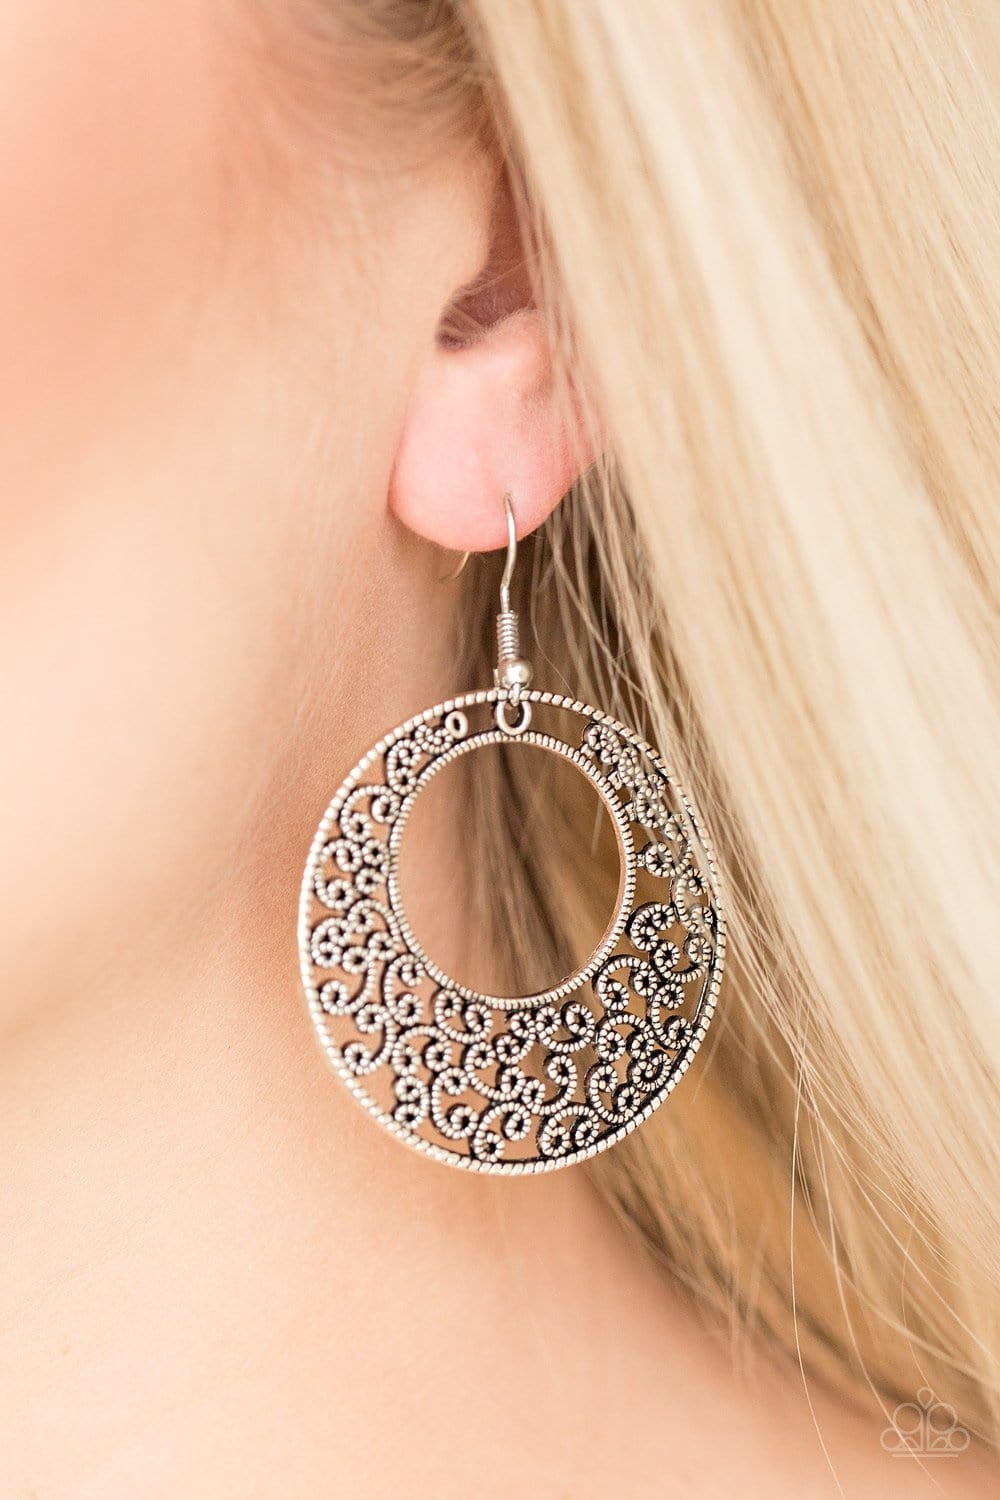 Paparazzi: Wistfully Winchester - Silver Earrings - Jewels N' Thingz Boutique